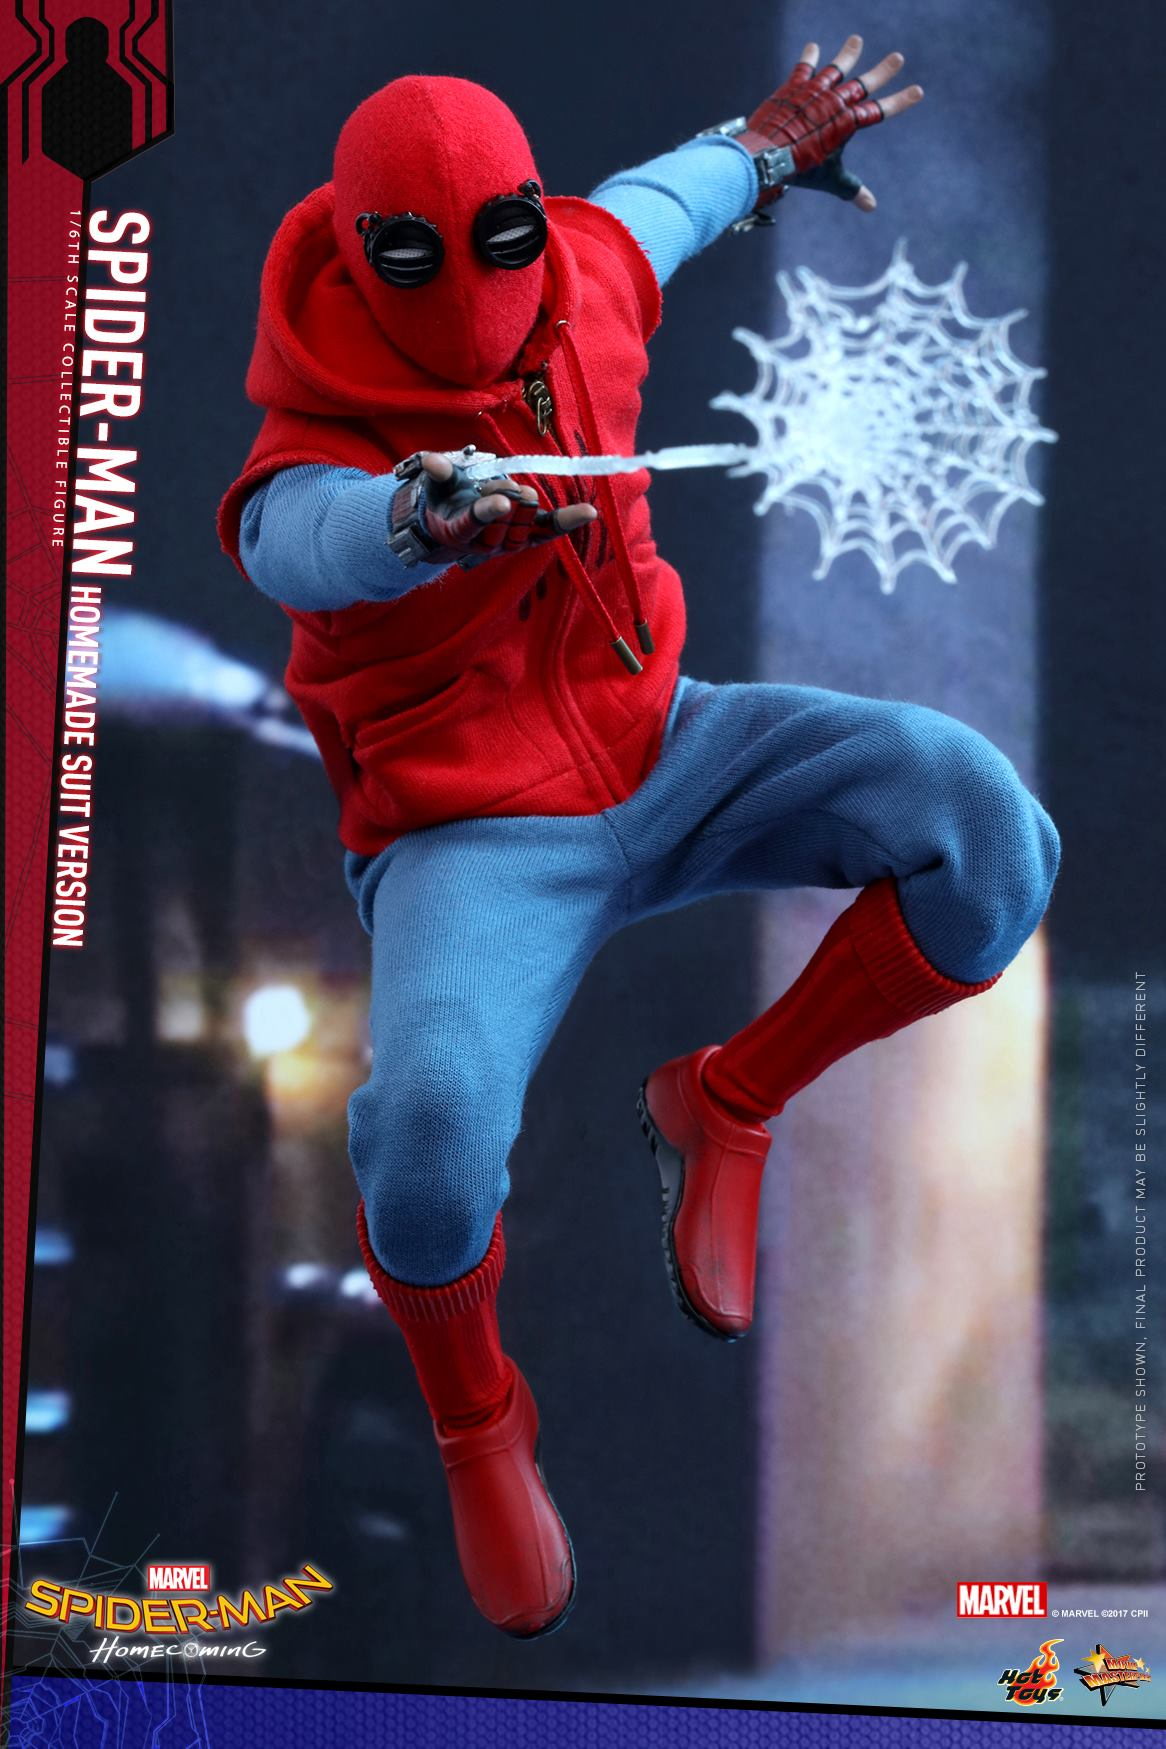 Spider-Man: Homecoming - Homemade Spider-Man Suit Figure by Hot Toys on homemade ghost shirts, homemade ironman shirts, homemade crayola shirts, homemade halloween shirts, homemade soccer shirts, homemade pacman shirts, homemade jurassic park shirts, homemade peter pan shirts, homemade wwe shirts, homemade cat shirts, homemade birthday shirts, homemade hannah montana shirts, homemade sports shirts, homemade football shirts, homemade pi shirts, homemade thomas shirts, homemade tinkerbell shirts, homemade superhero shirts, homemade dinosaur shirts, homemade superman costume for a girl,